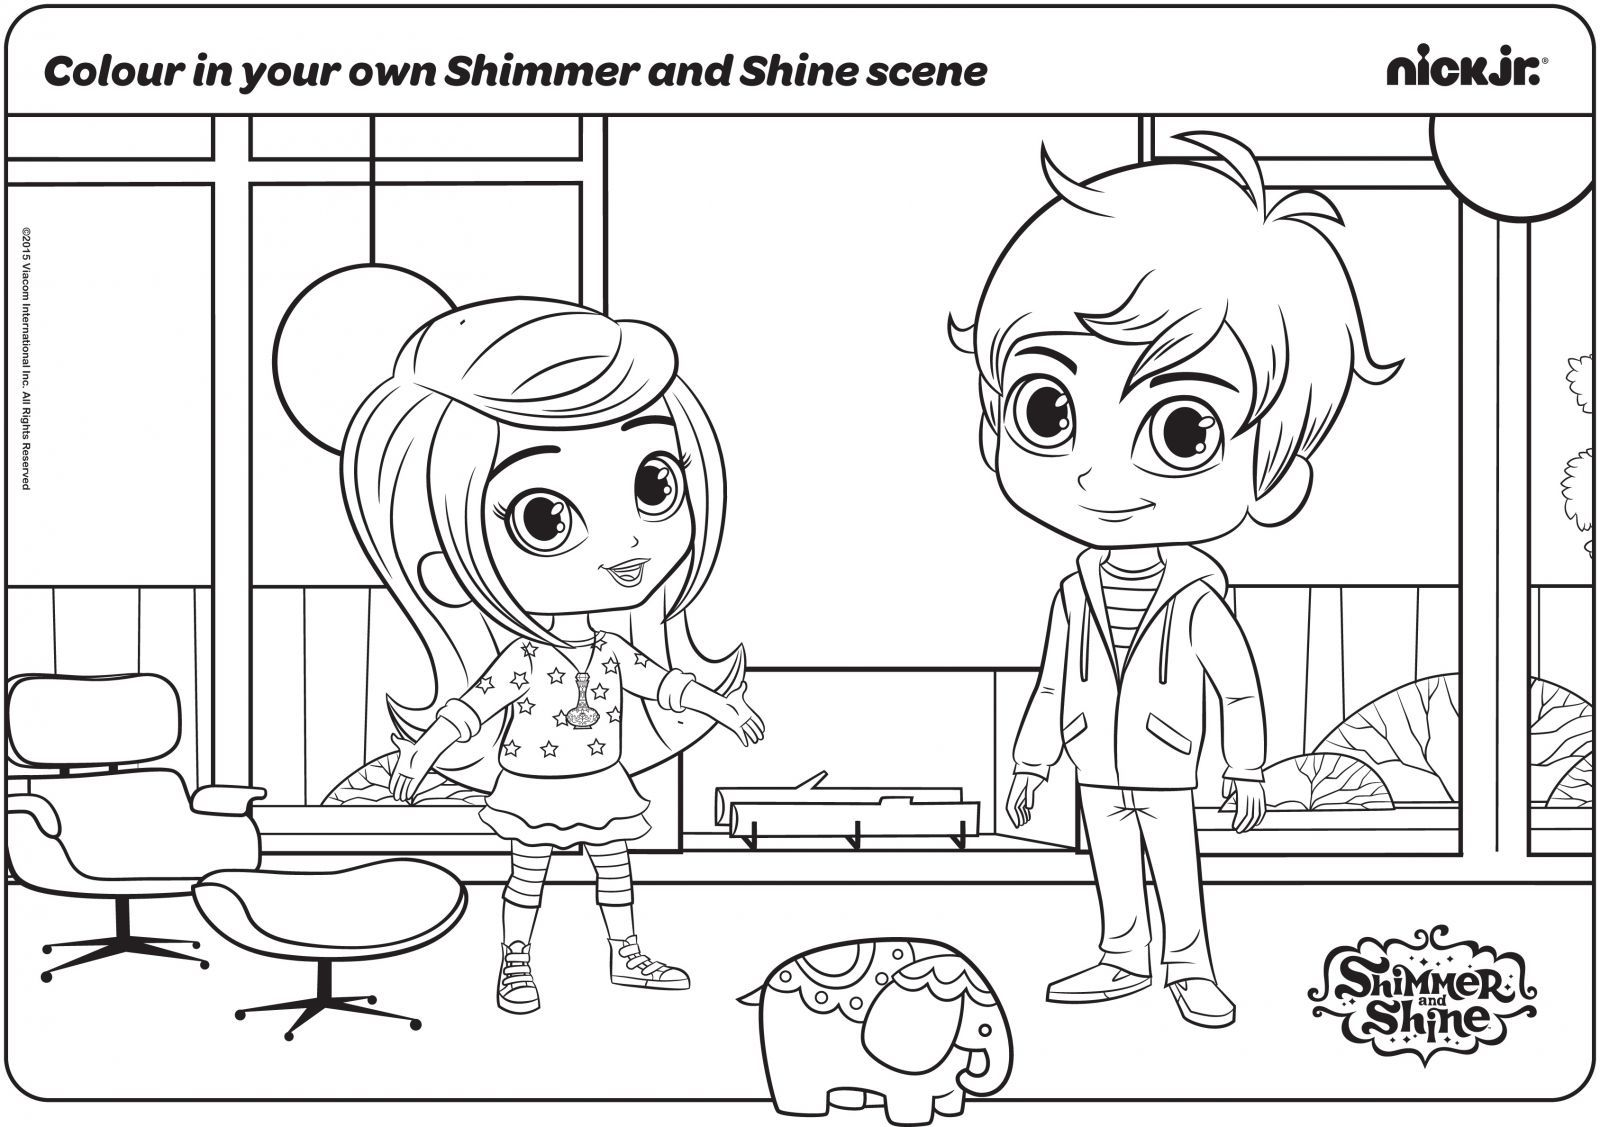 30 Magical Shimmer And Shine Coloring Pages   Coloring ...